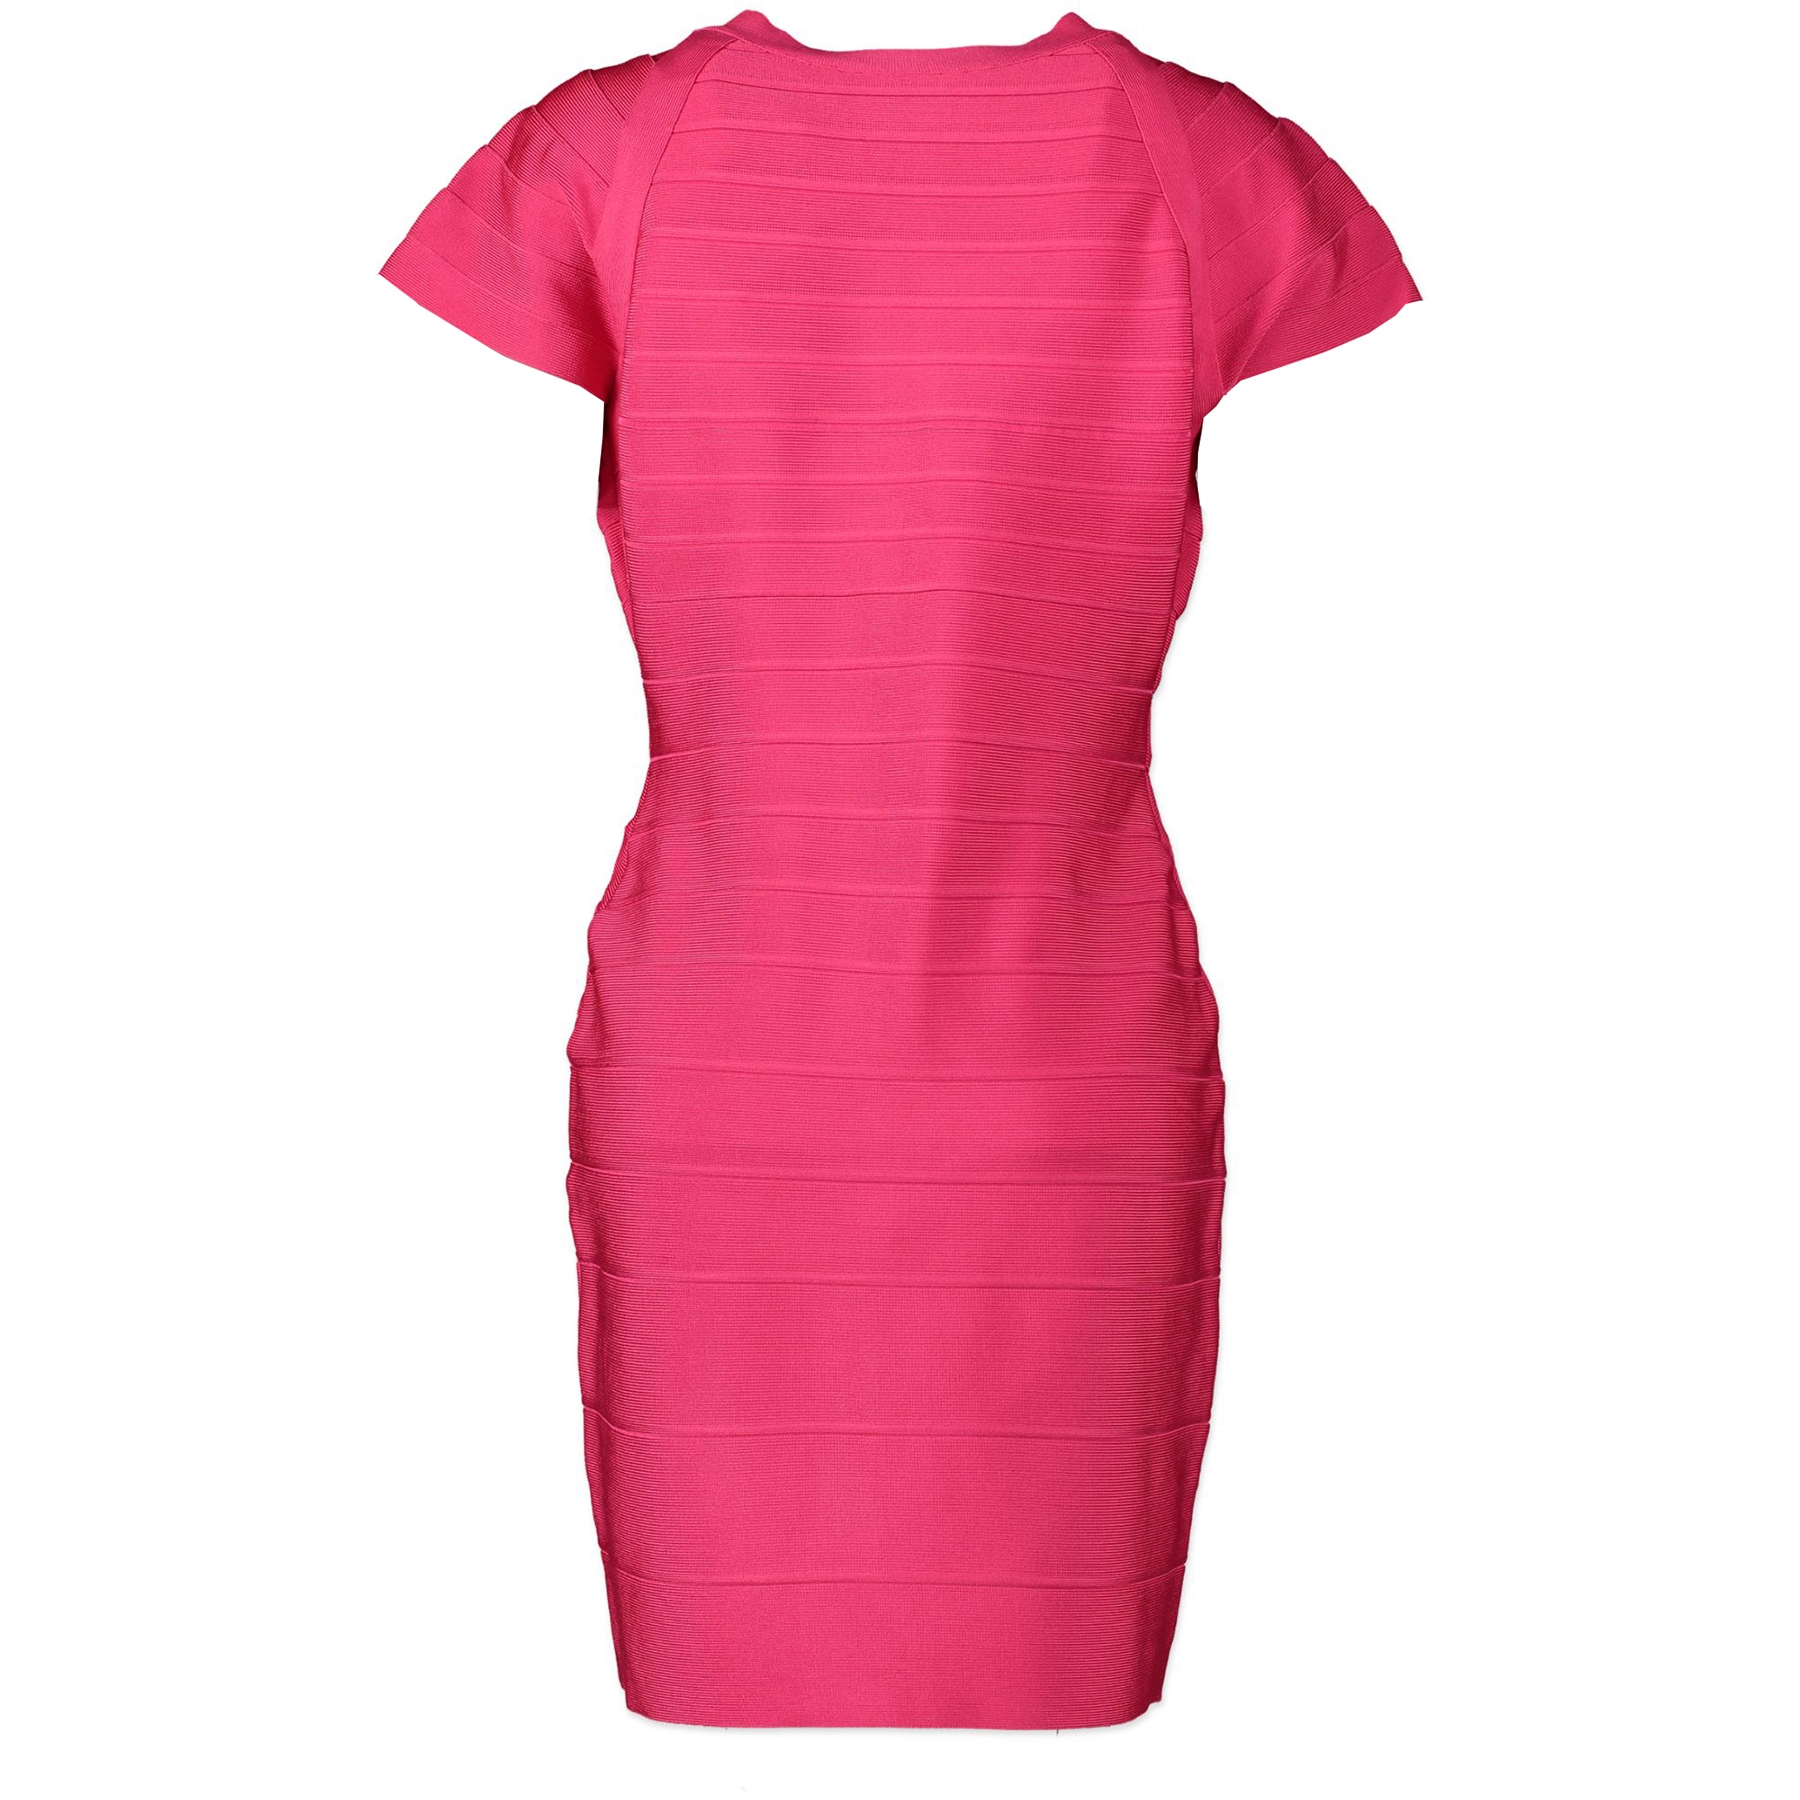 Herve Leger Hot Pink Zip Bodycon Bandage Dress